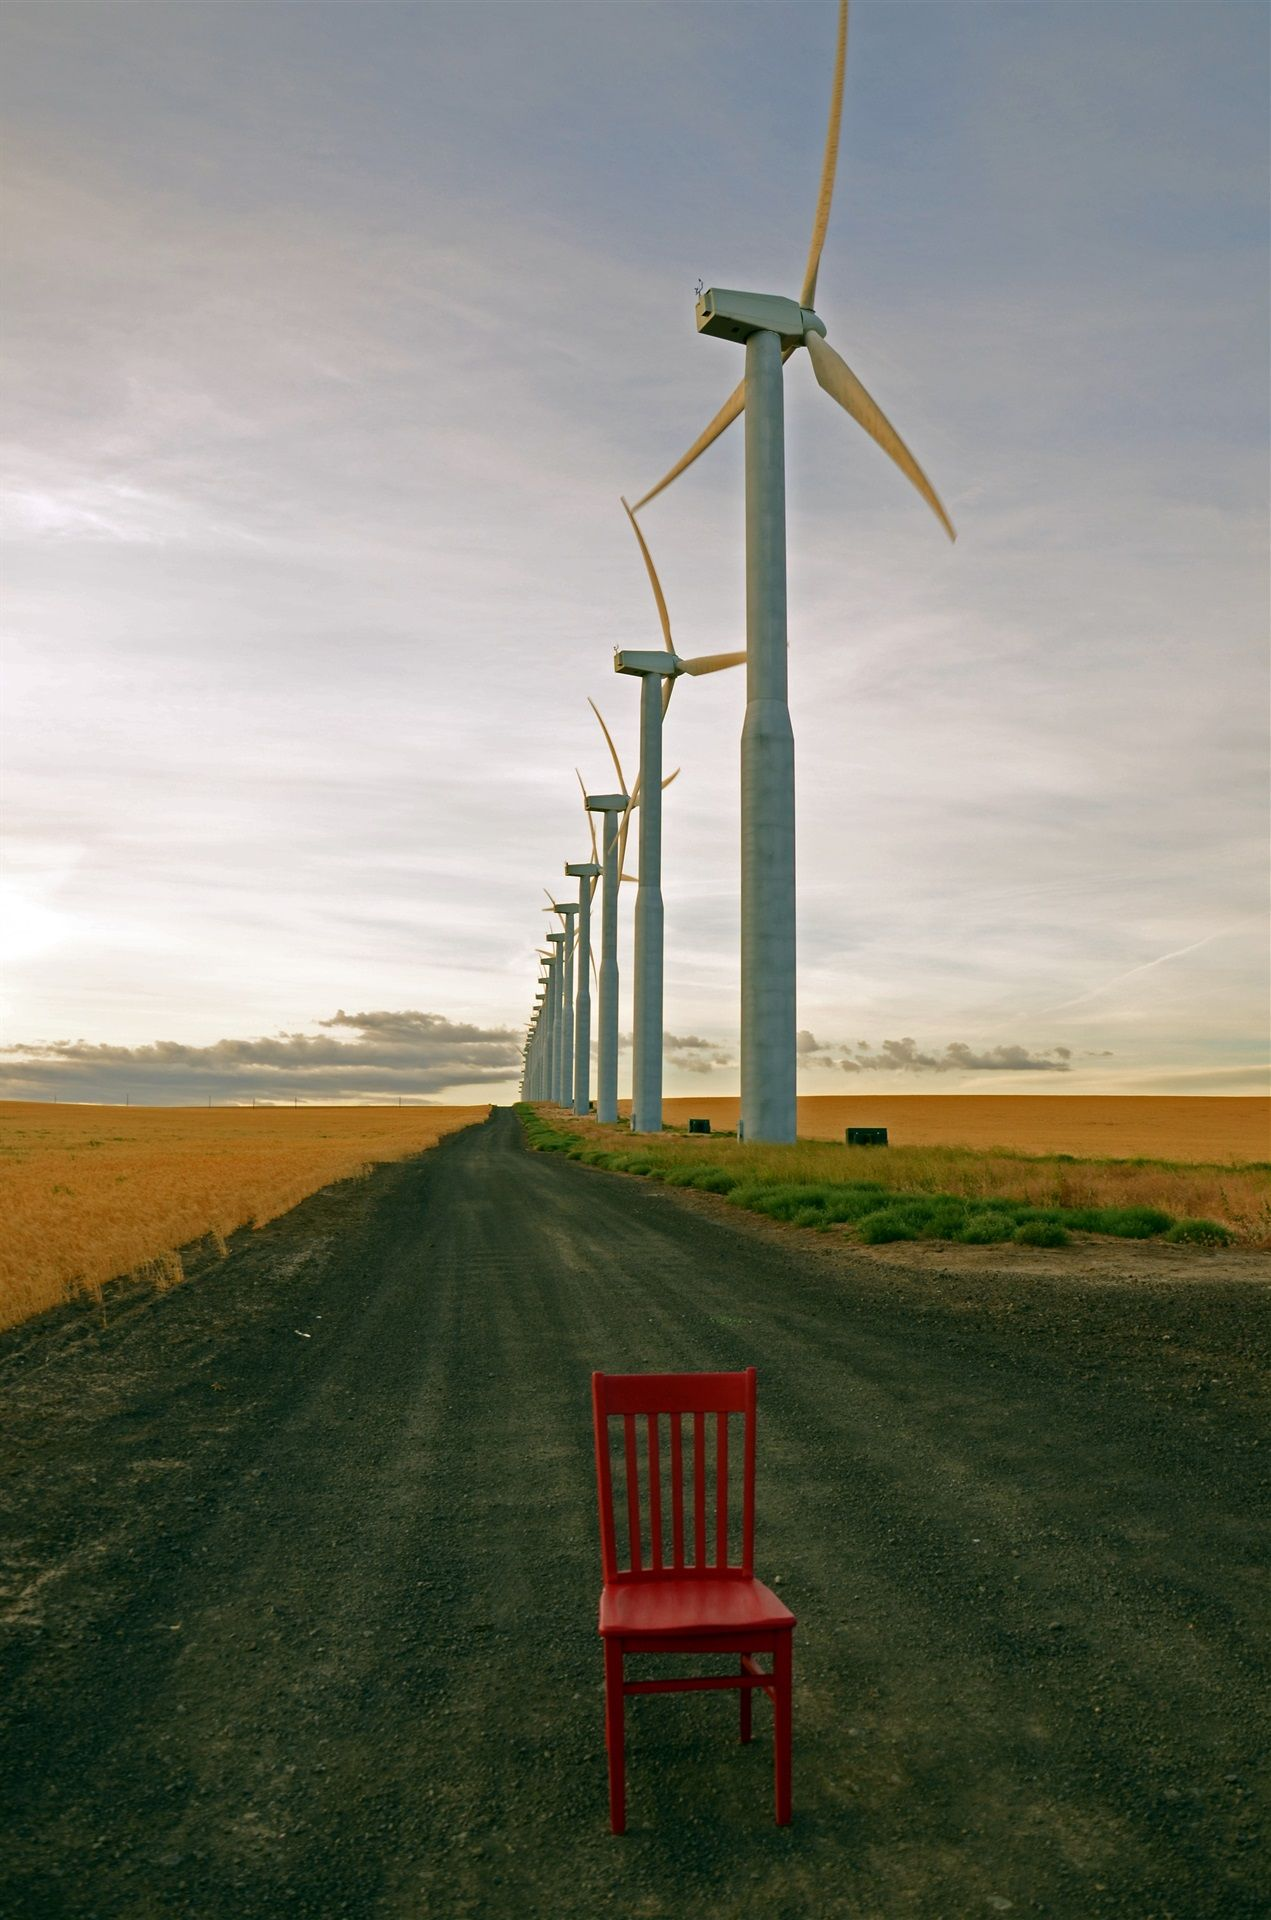 Red chair sitting on a gravel road that is lined with wind turbines